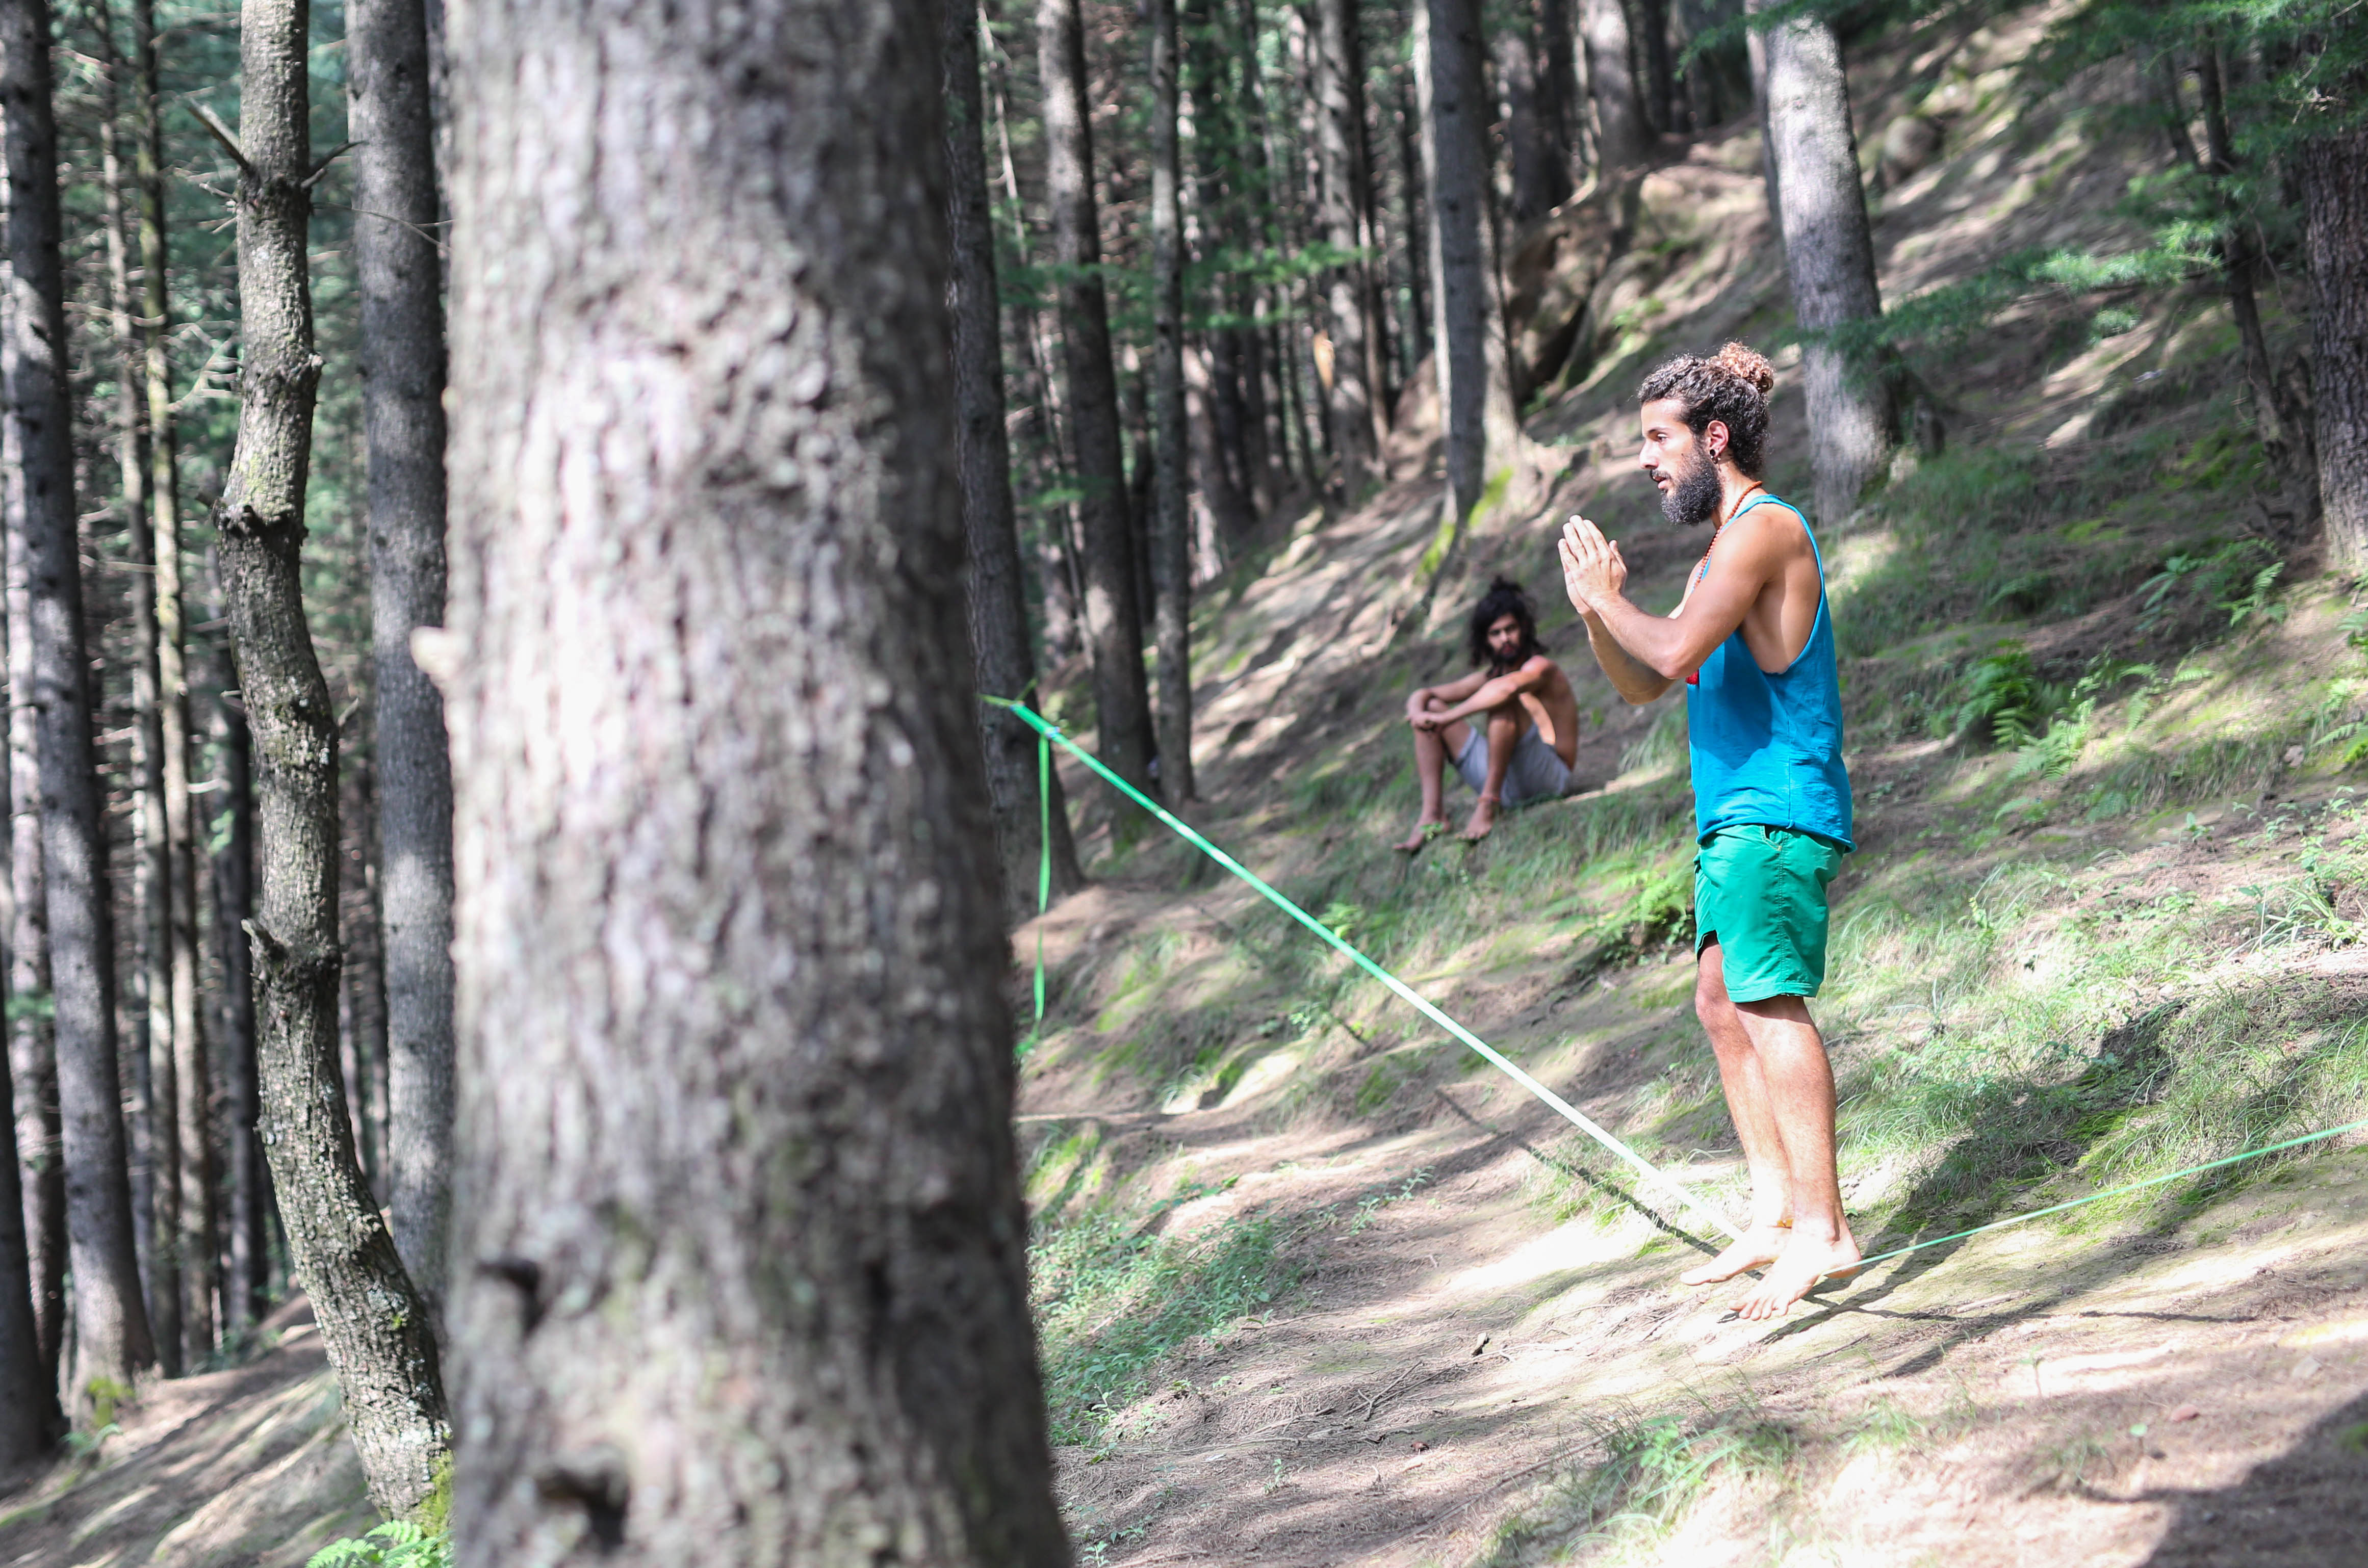 slackline in the forest